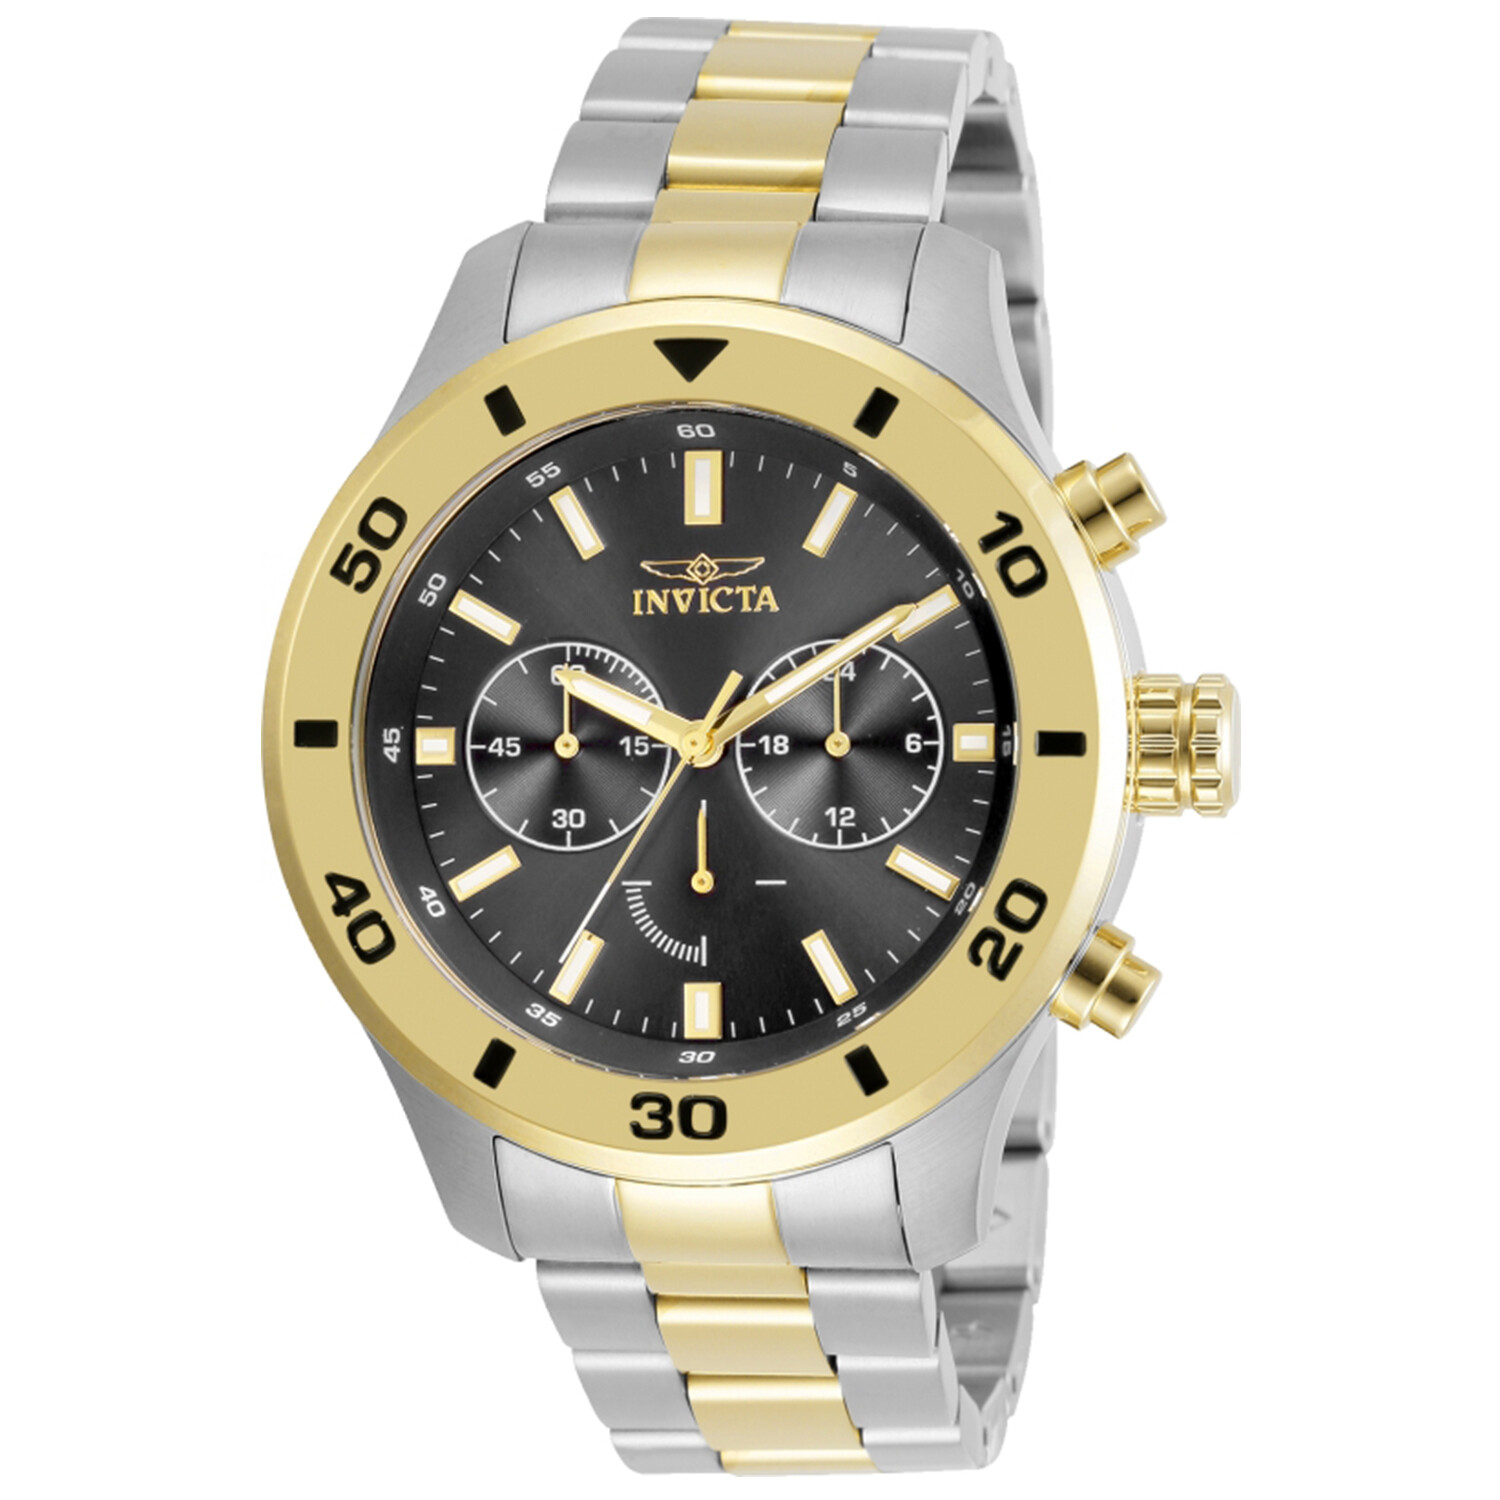 Invicta Men's Specialty 28889 Silver Stainless-Steel Japanese Quartz Dress Watch